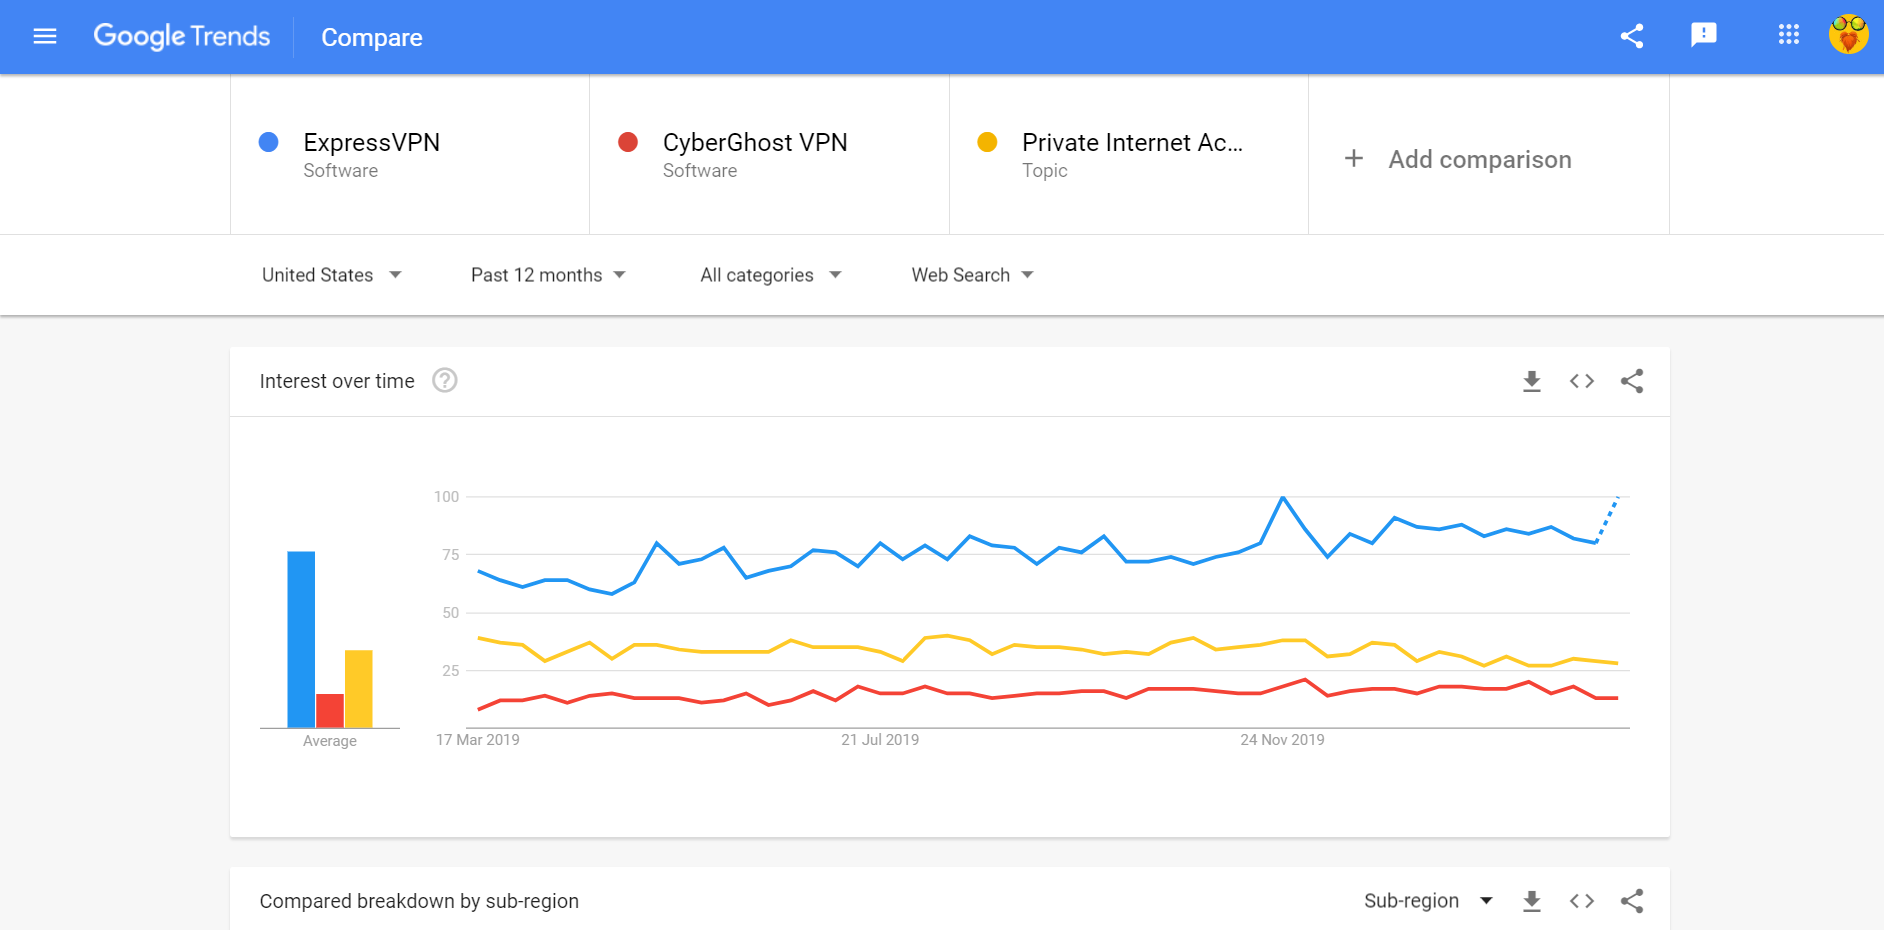 google trends ExpressVPN comparison with competitors